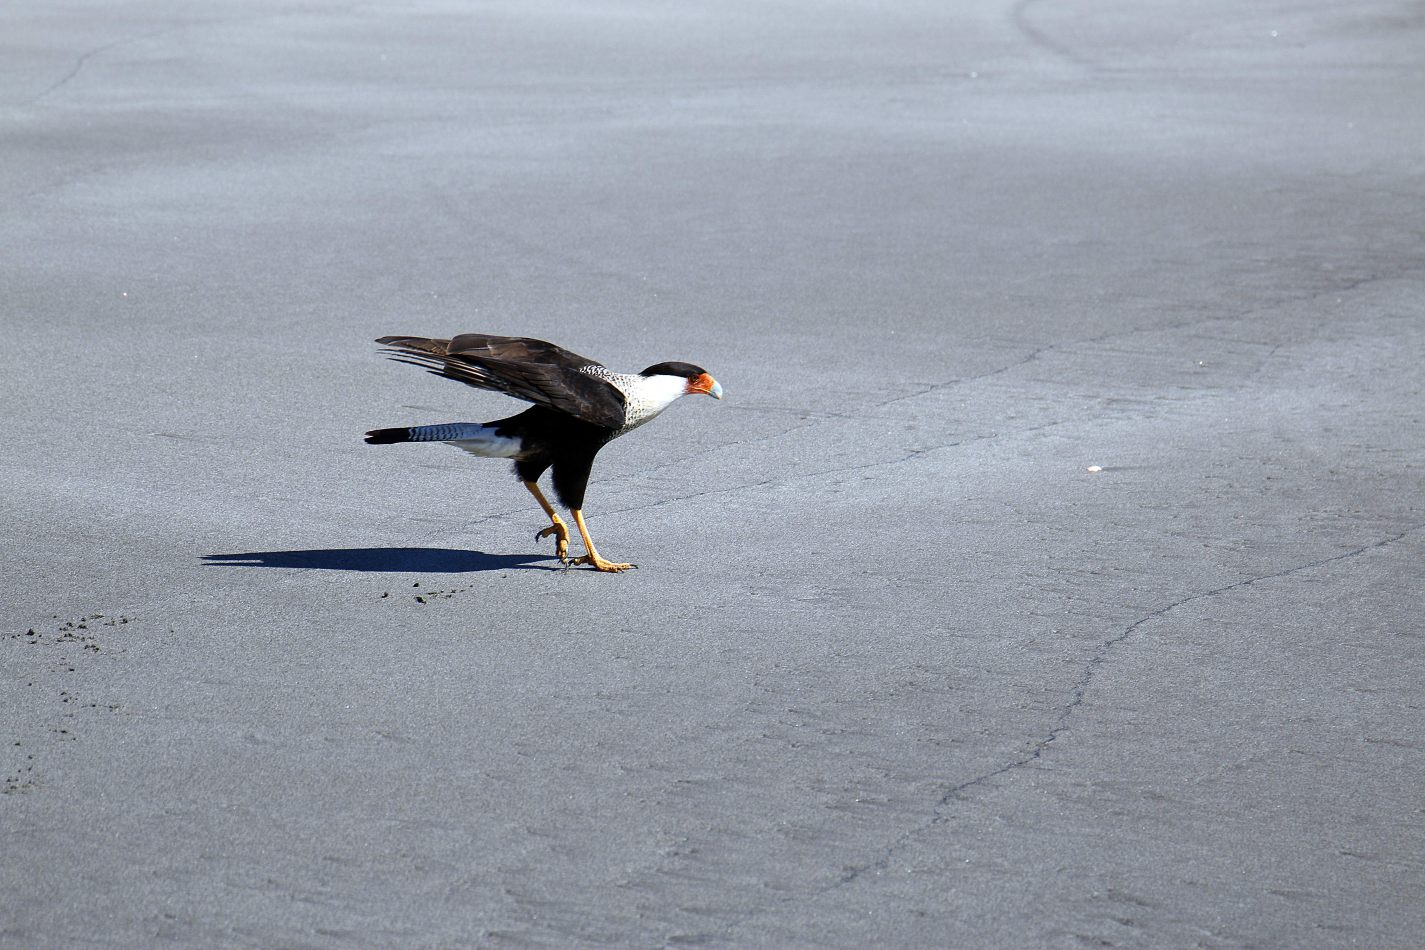 Anthony Ellis Photography: Small Sacrifices - Caracara